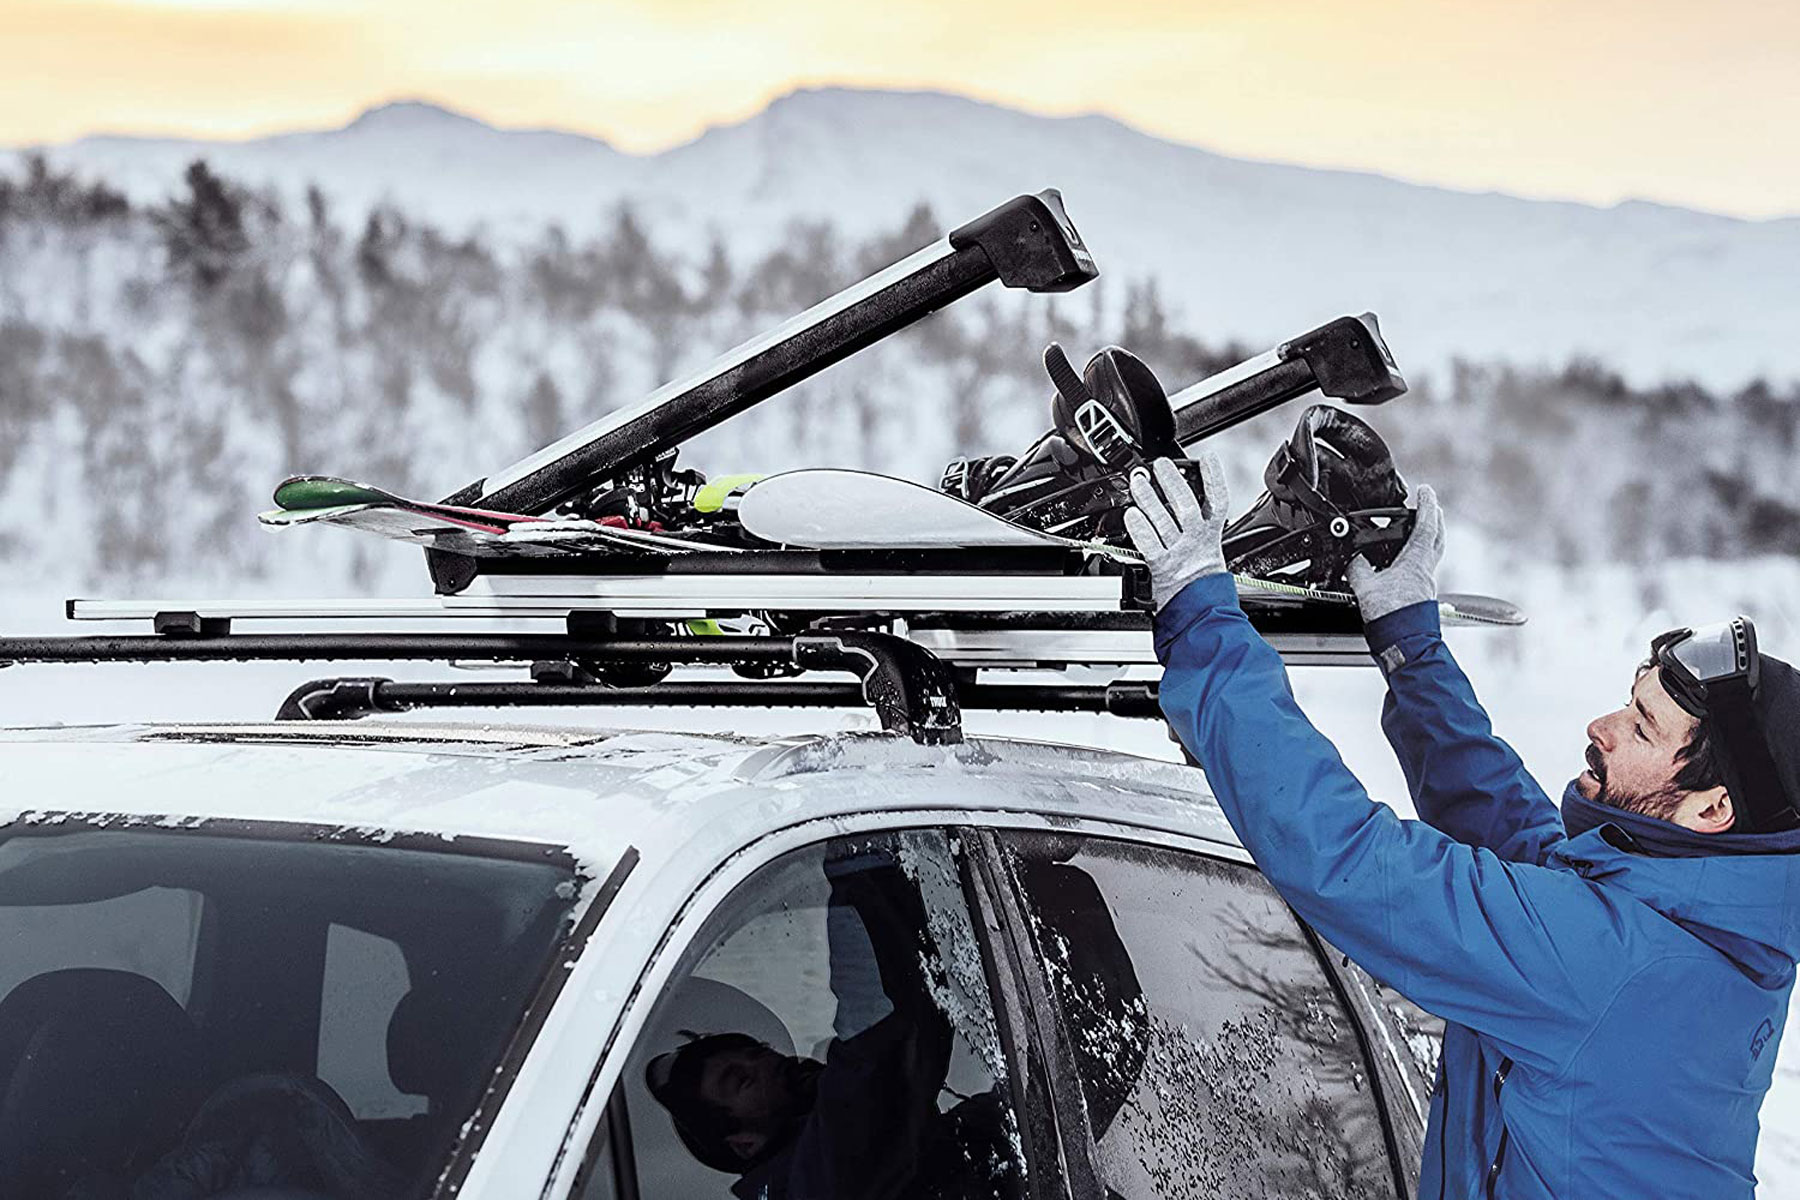 These Are the Best Ski Racks You Can Buy for Your Car